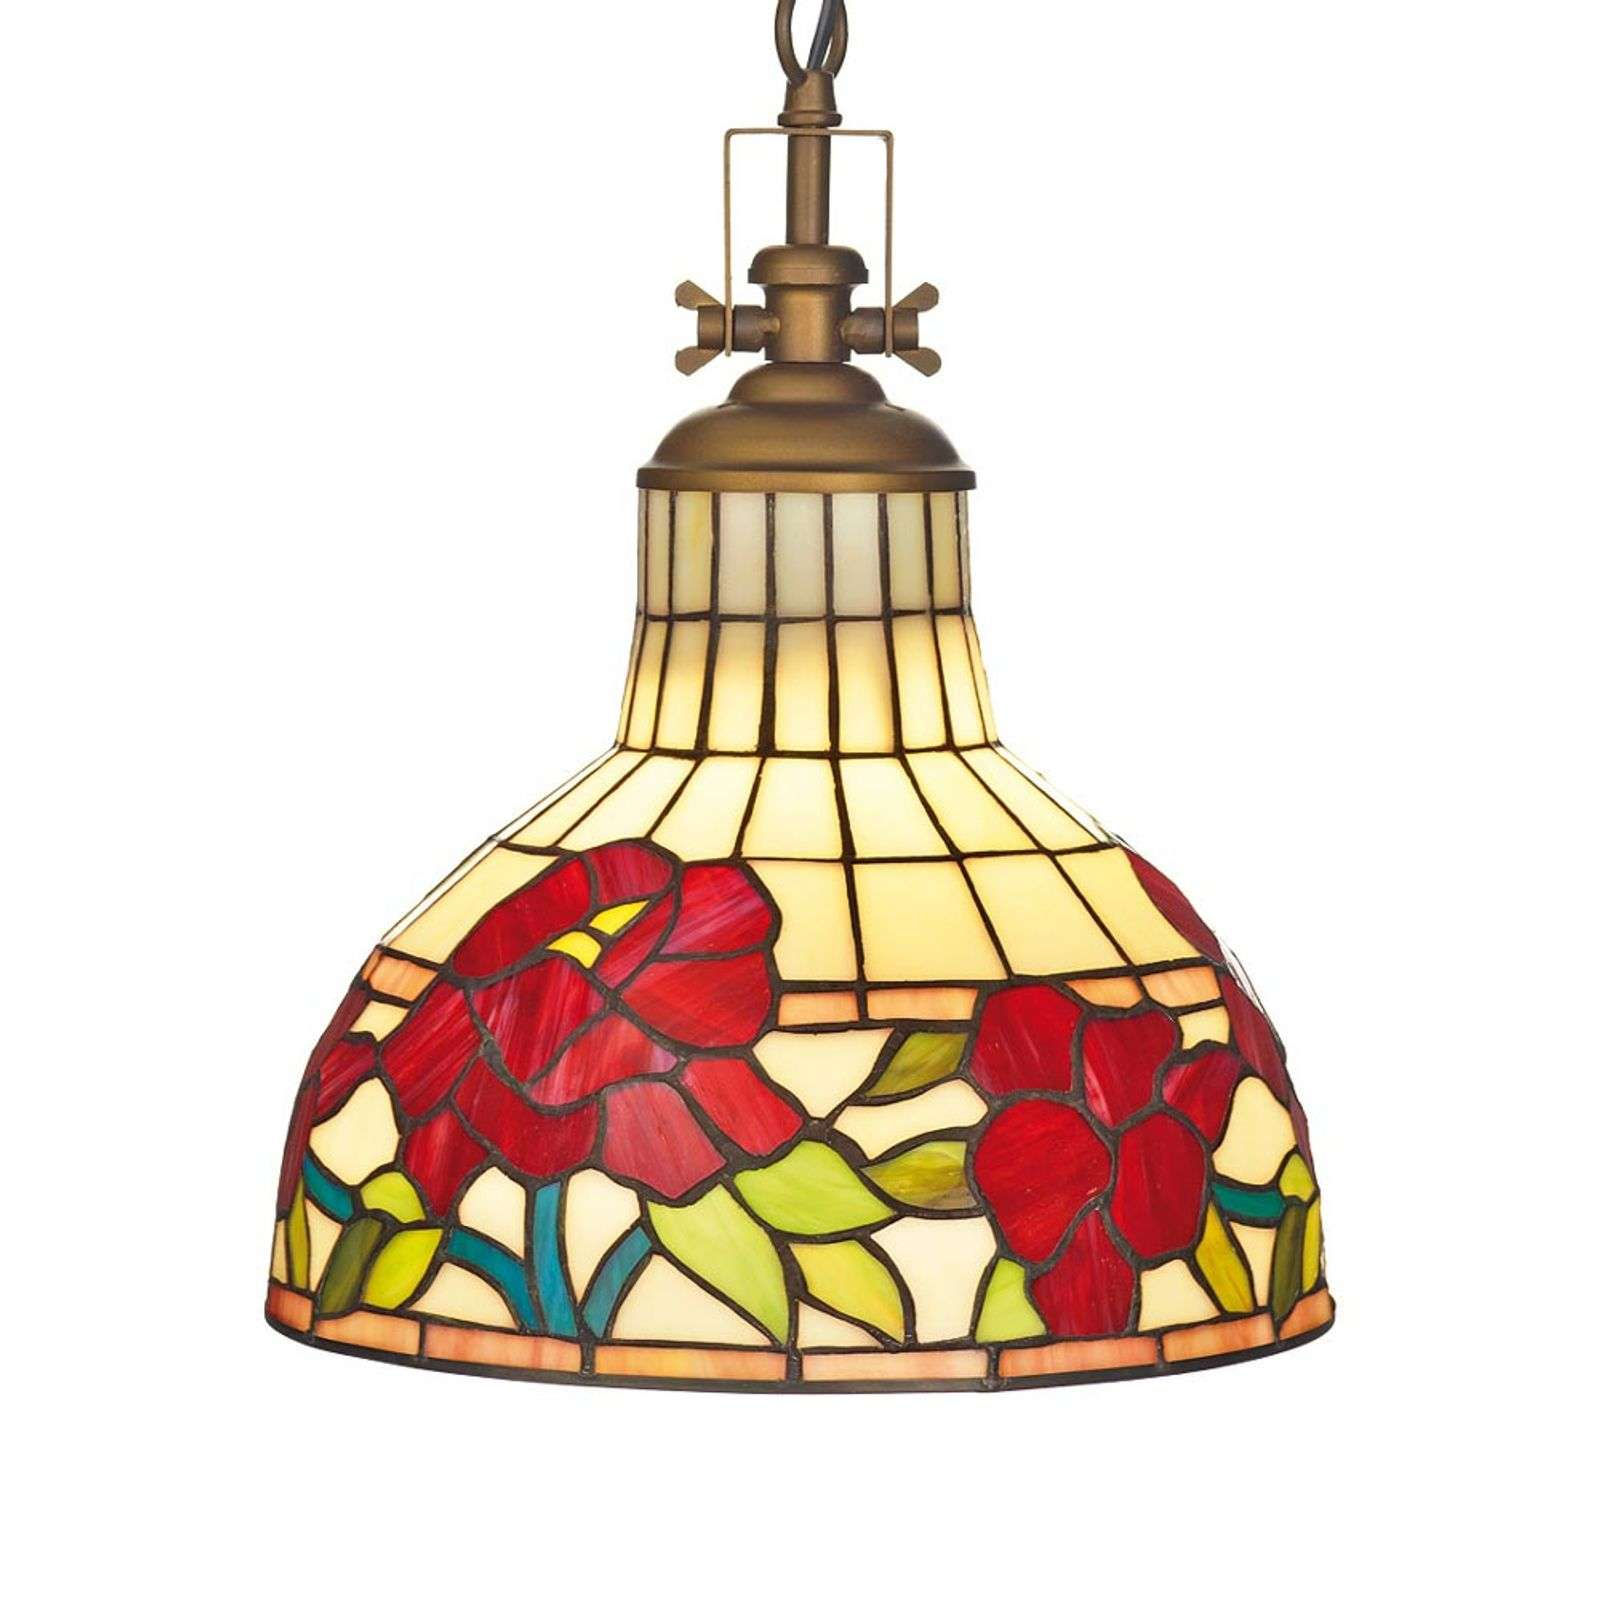 Mooie hanglamp Yria in Tiffany-stijl